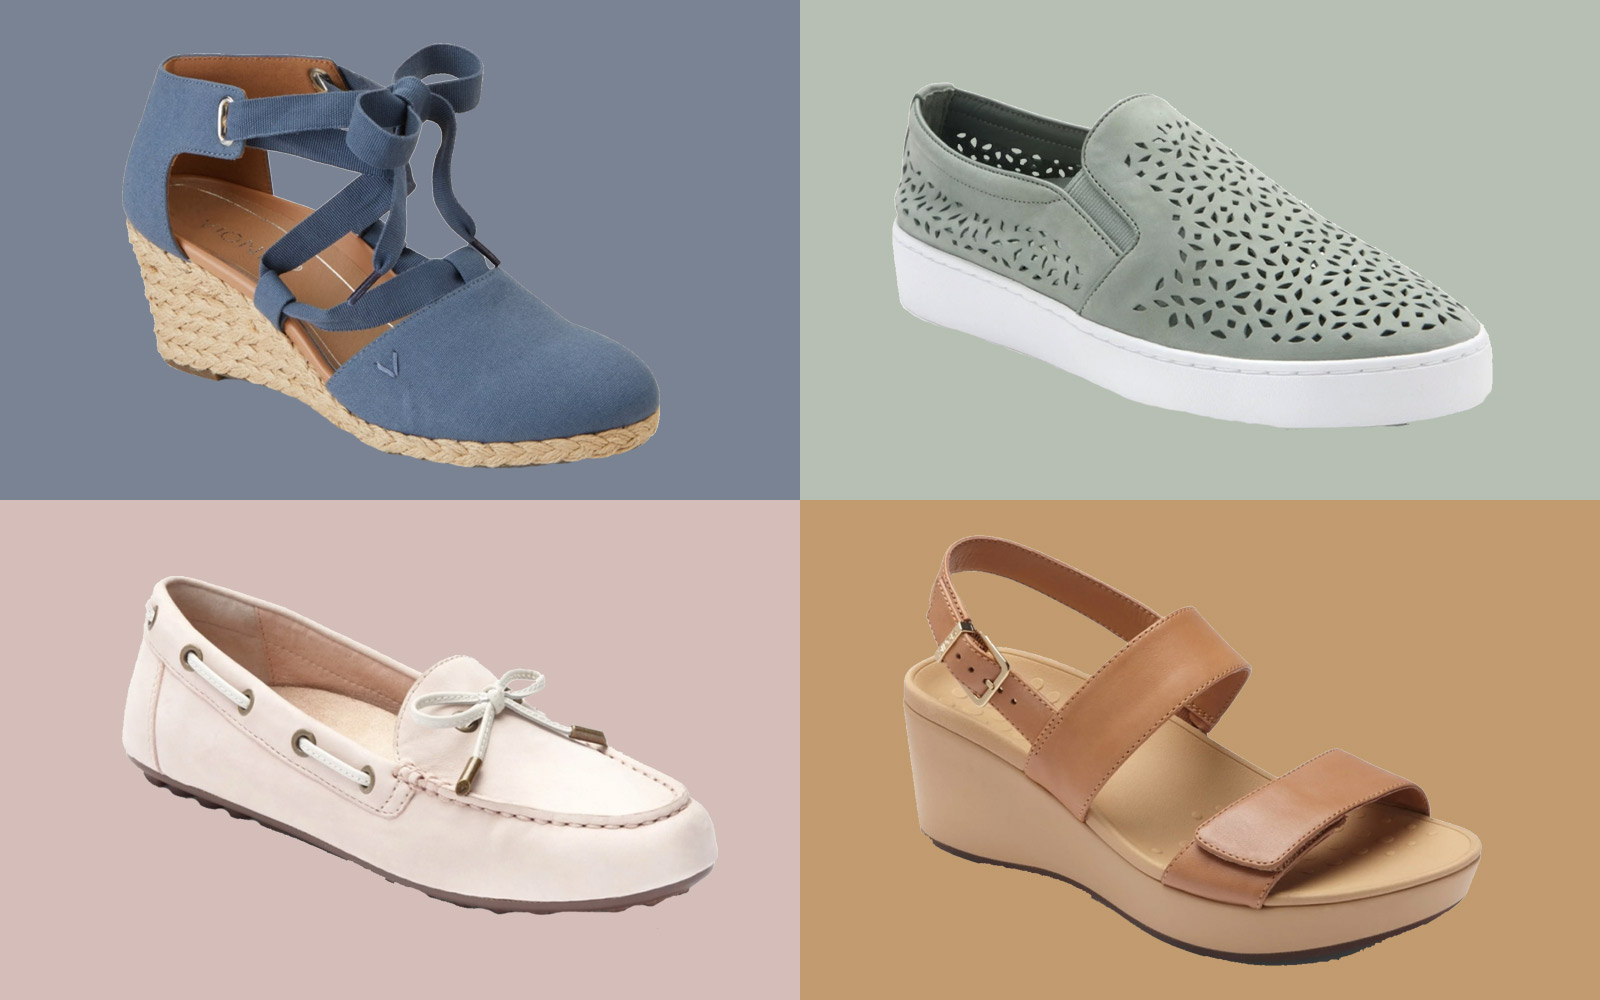 This Podiatrist-designed Shoe Brand Is Having a Sale on Its Most Popular Styles